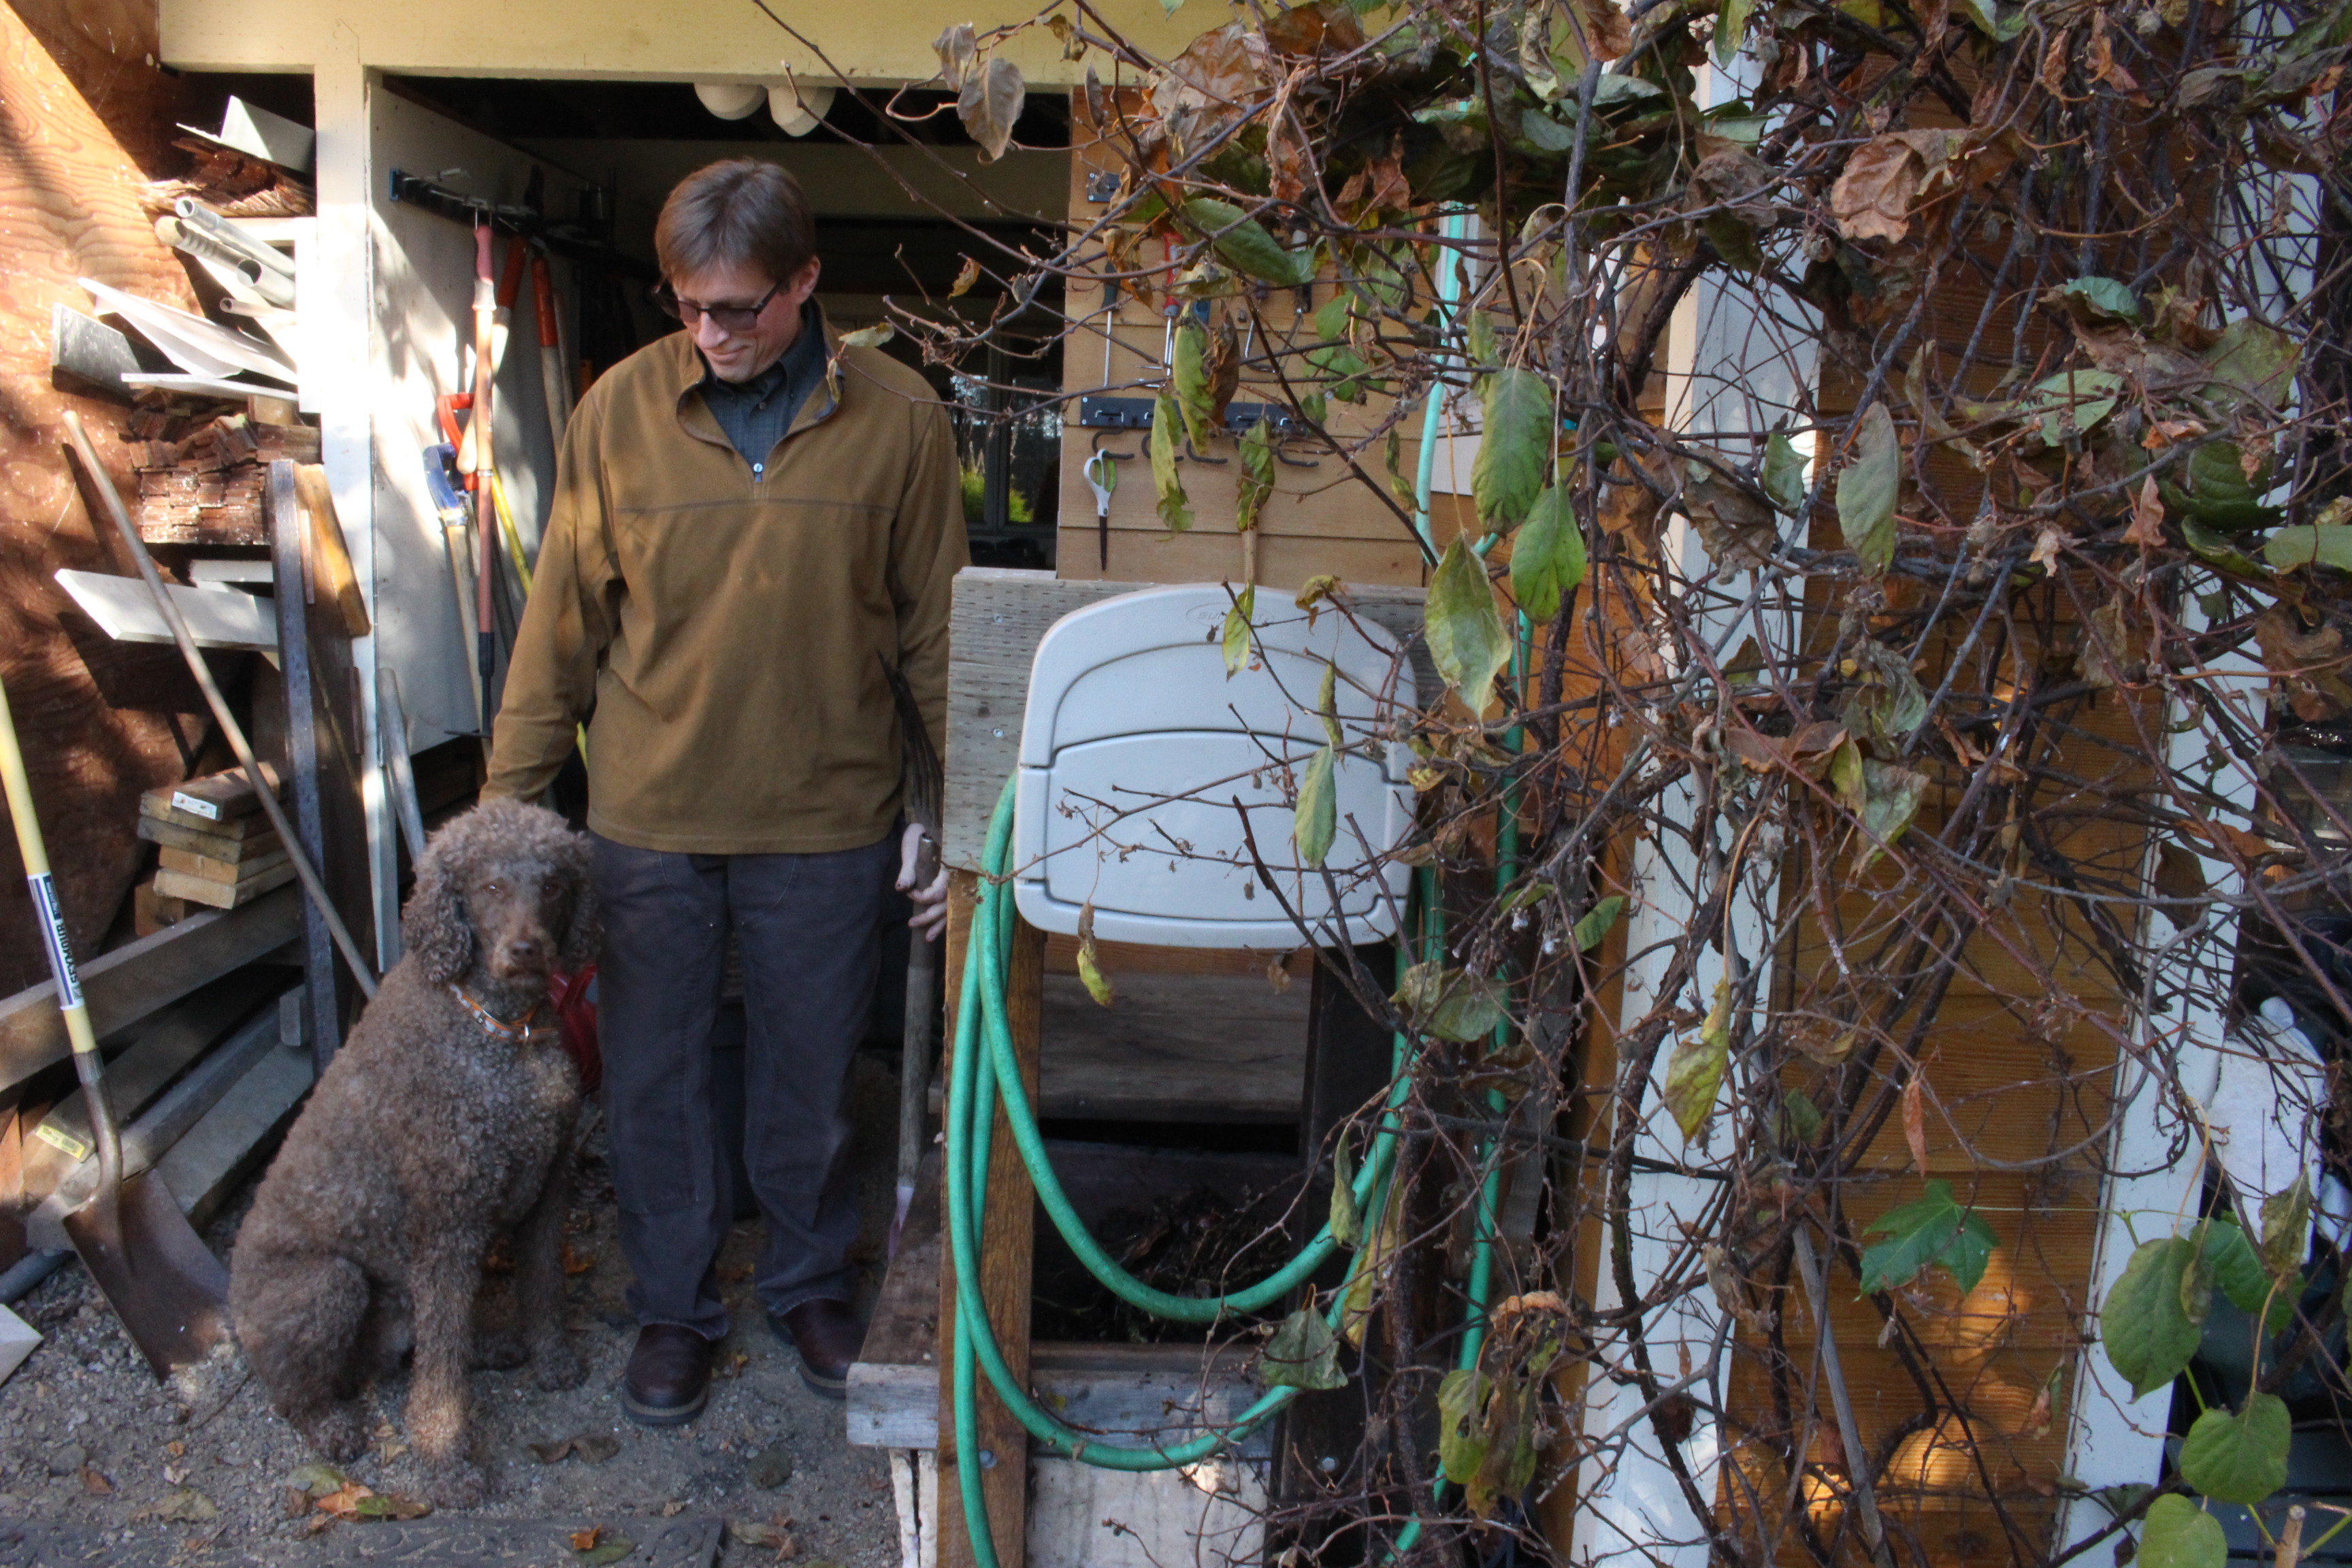 Bob Deering at his home with his dog Gamby and compost bins. (Photo by Elizabeth Jenkins/KTOO)